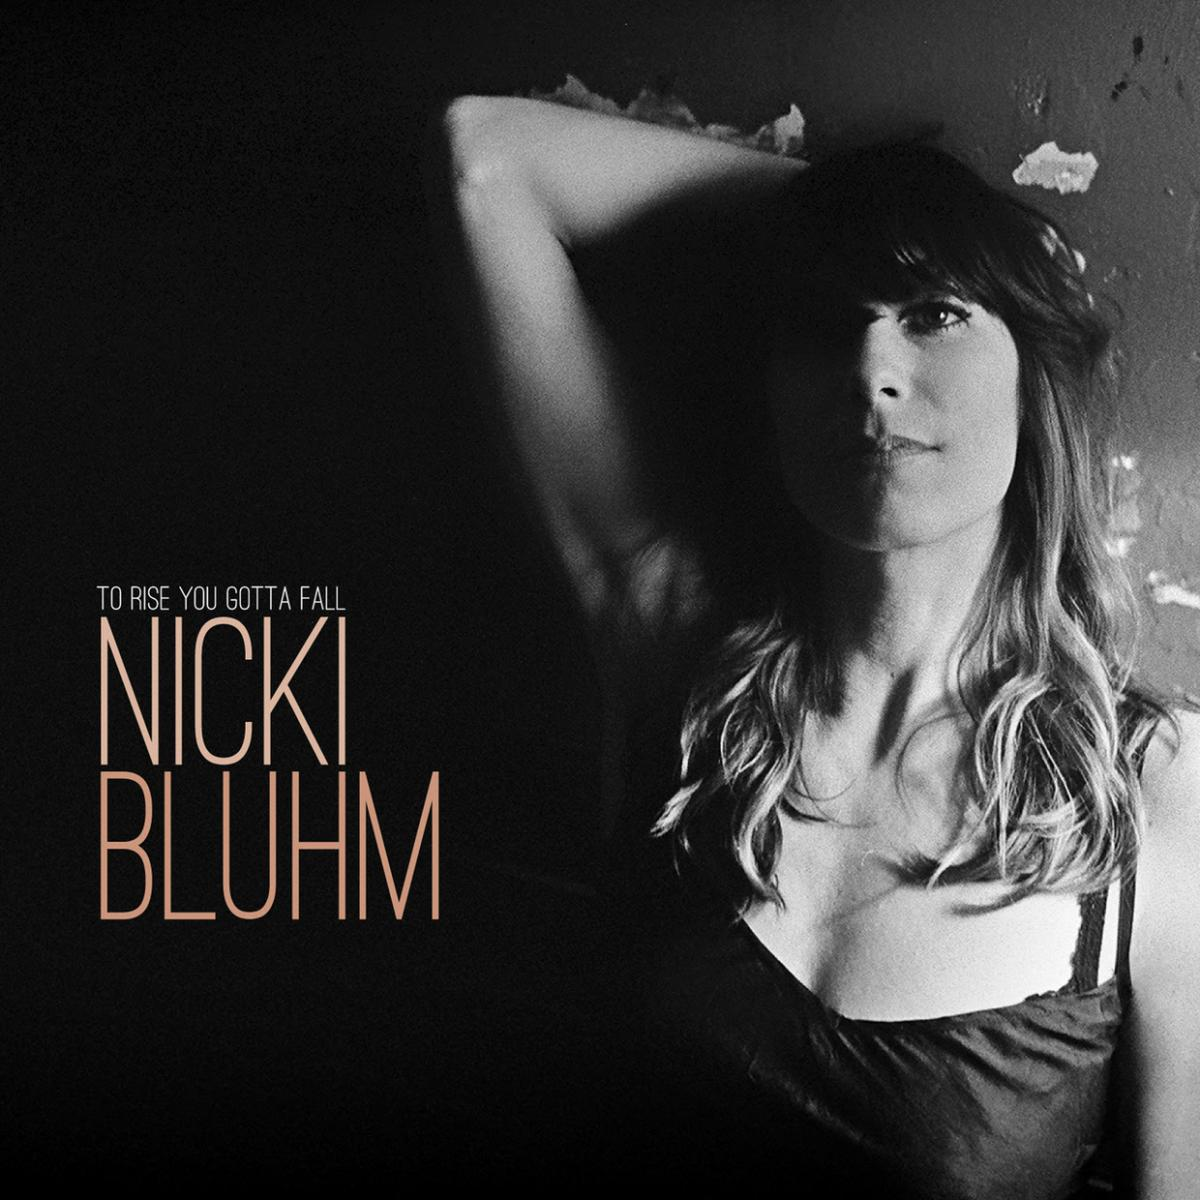 nikki bluhm to rise you gotta fall